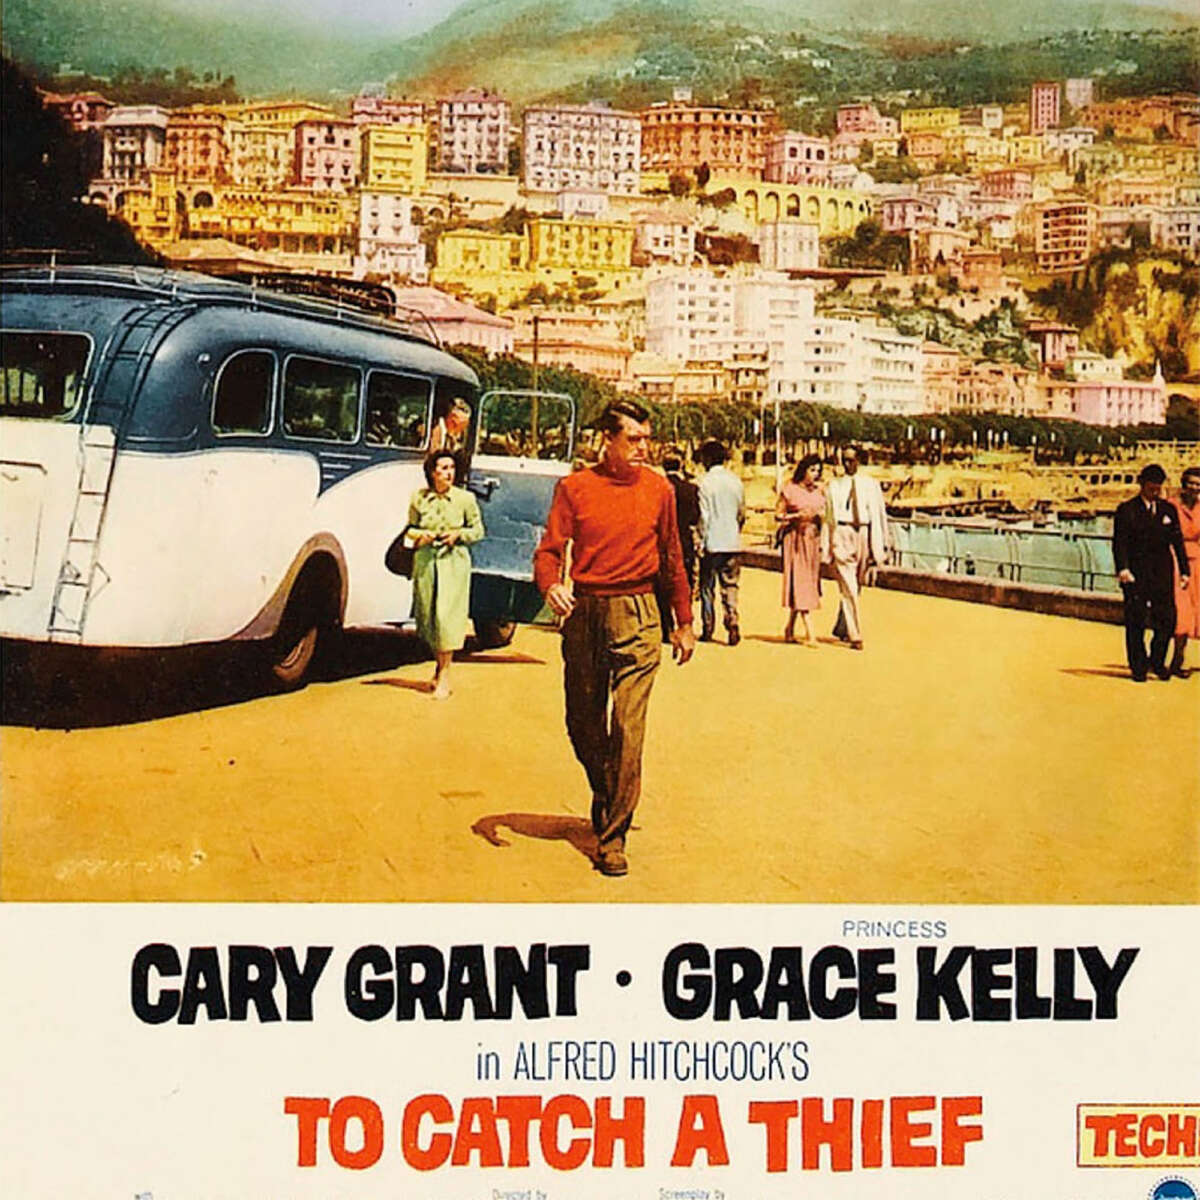 Celluloid Cloth Carey Grant To Catch A Thief